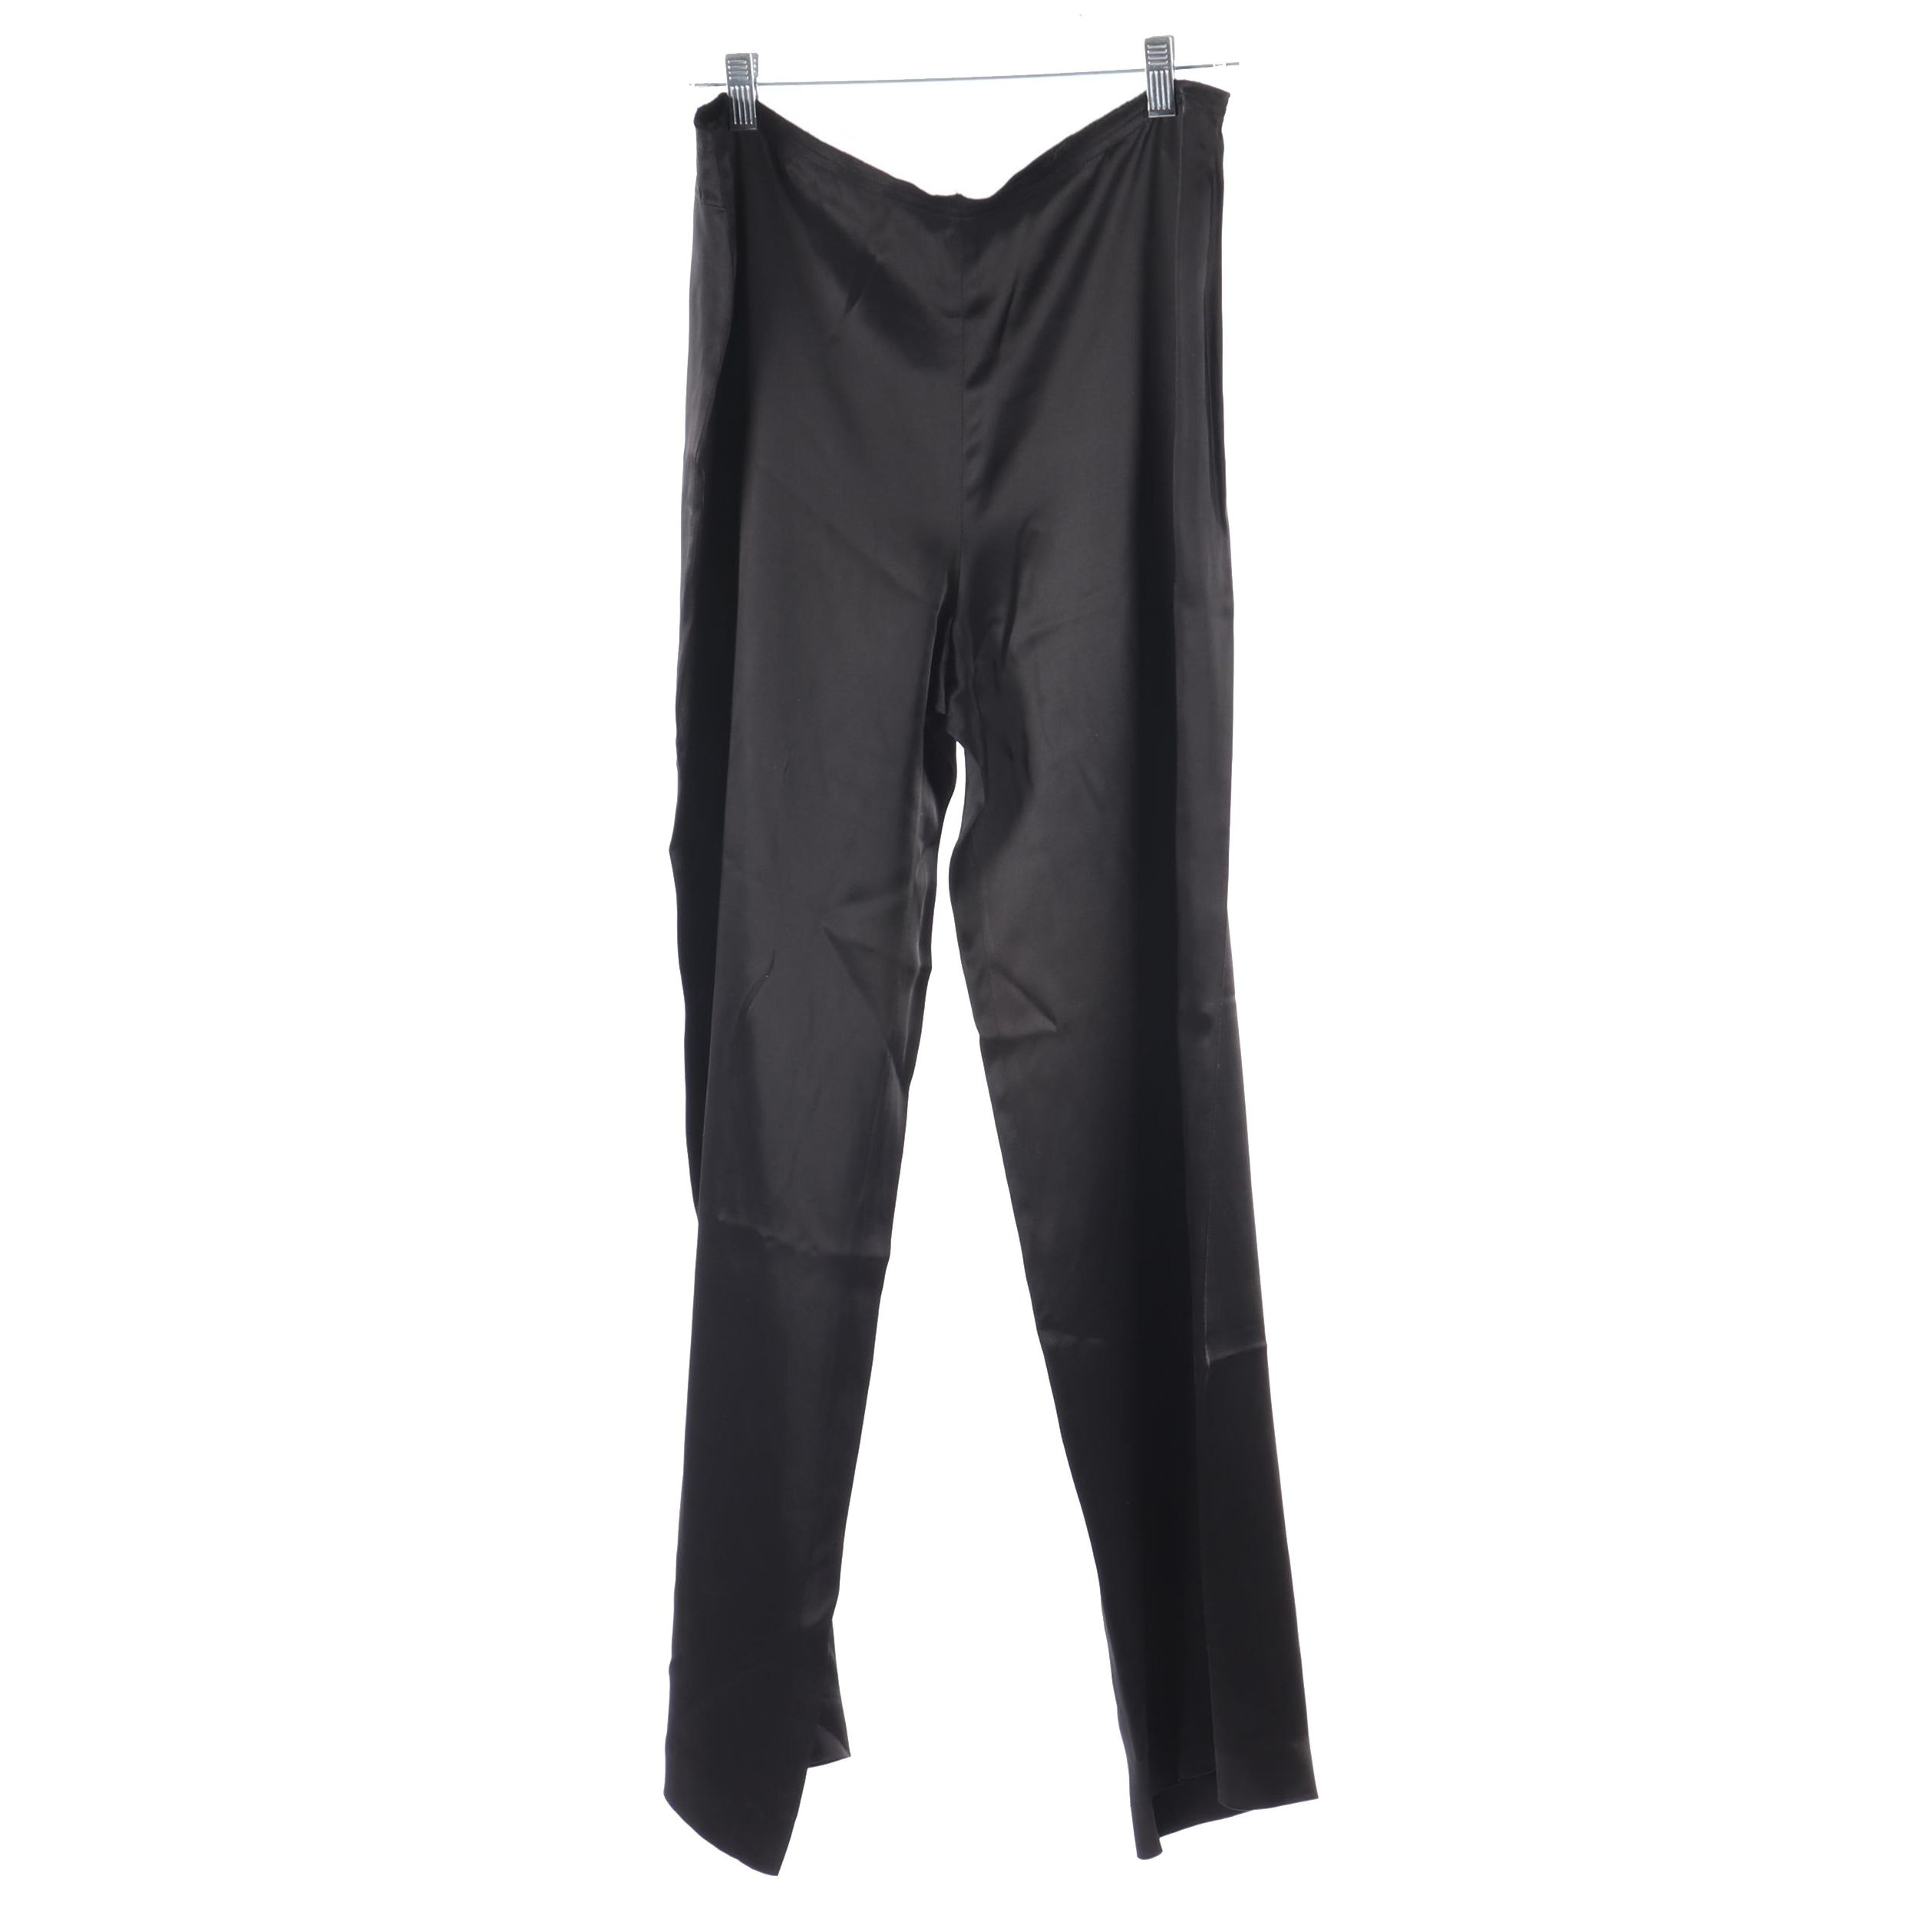 Women's Dries Van Noten Black Acetate Blend Pants, Made in Belgium